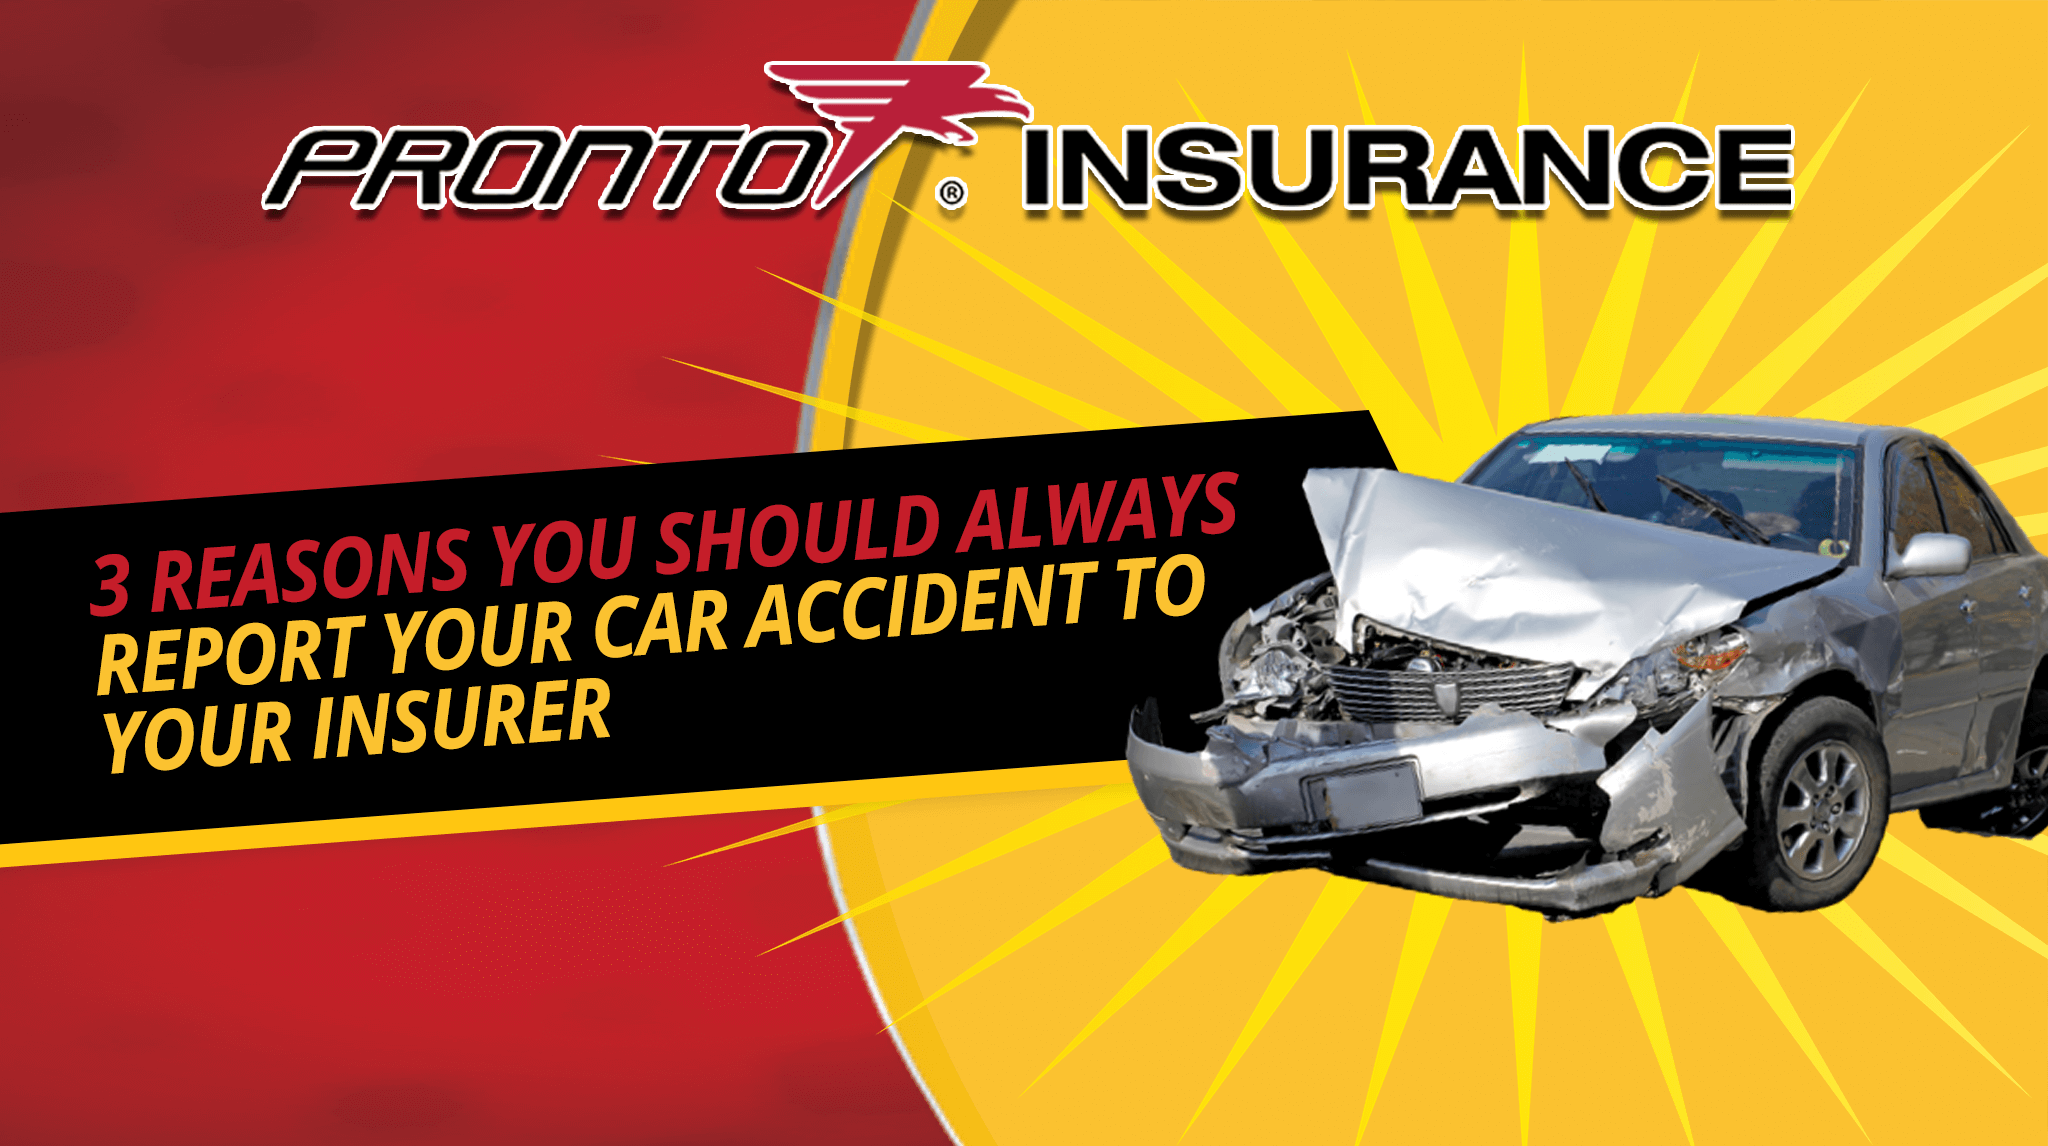 3 Reasons You Should Always Report Your Car Accident to Your Insurer